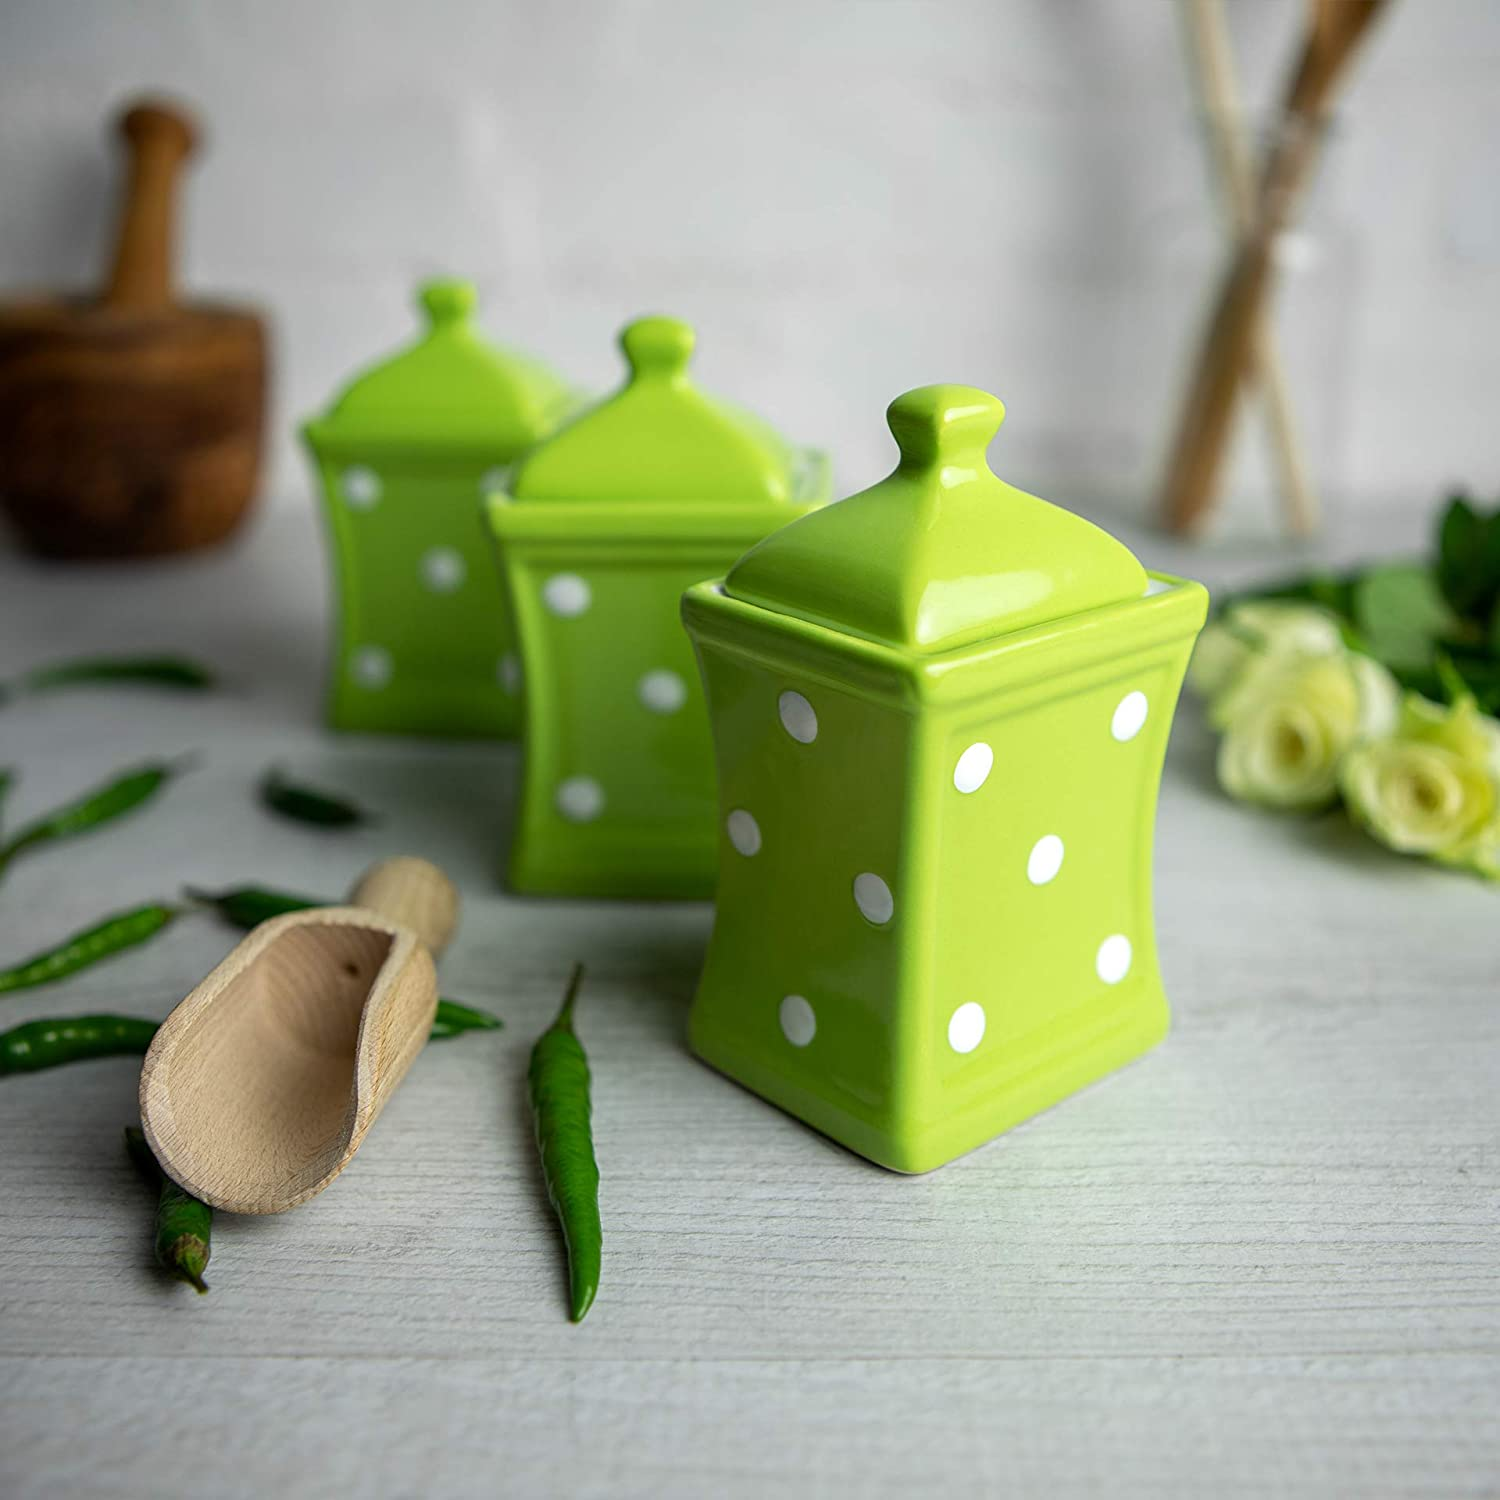 City to Cottage Lime Green and White   Polka Dot   Handmade   Small 5.3oz/150ml Ceramic Kitchen   Herb Spice   Storage Jar Set of 3   Containers   Canisters